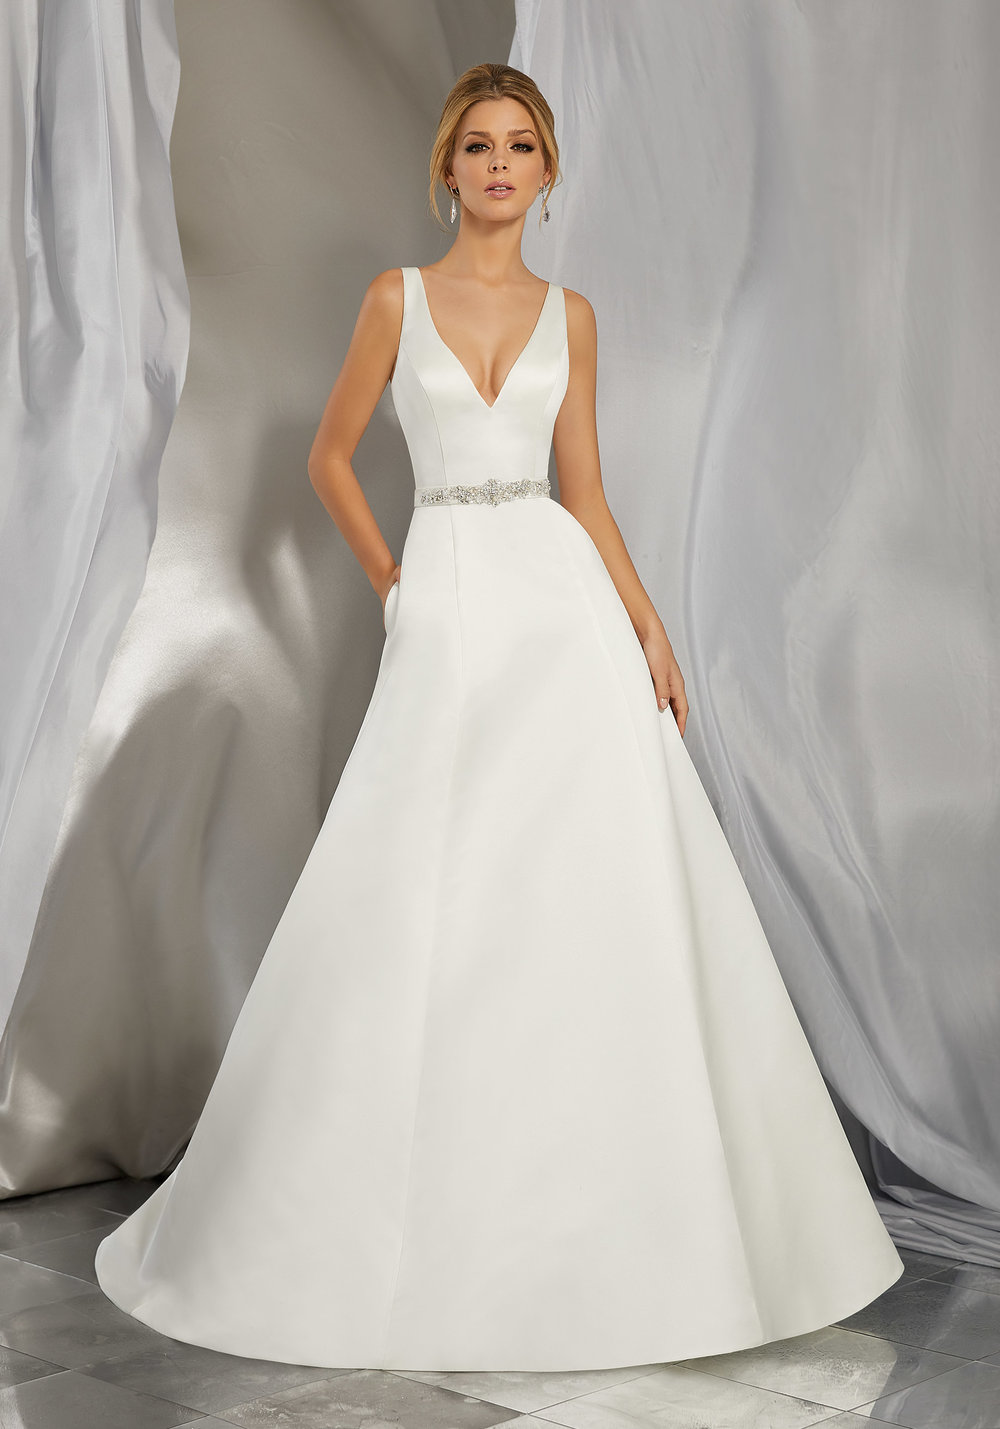 Mori Lee 6862 Ivory // Retail Price $774 | Our Price $541